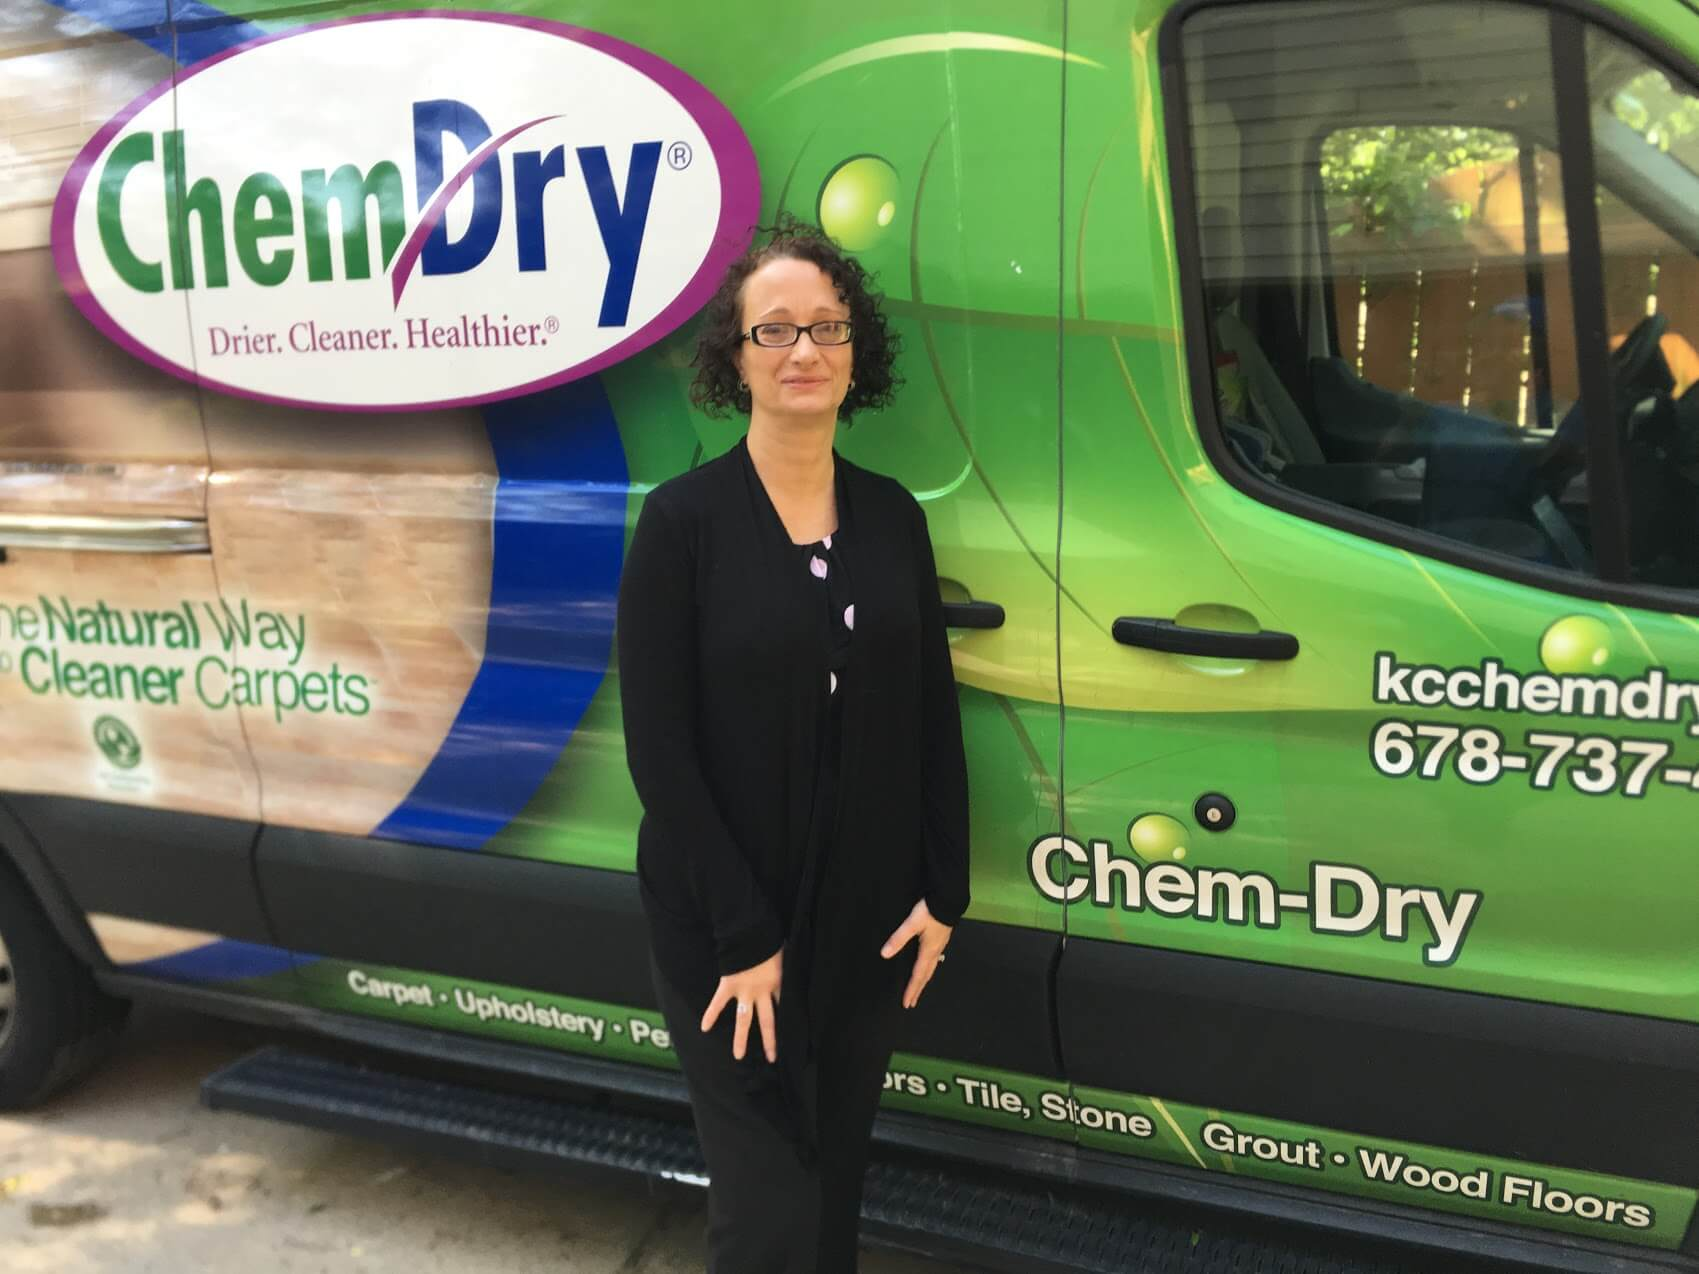 Tanja in front of green K&C Chem-Dry van